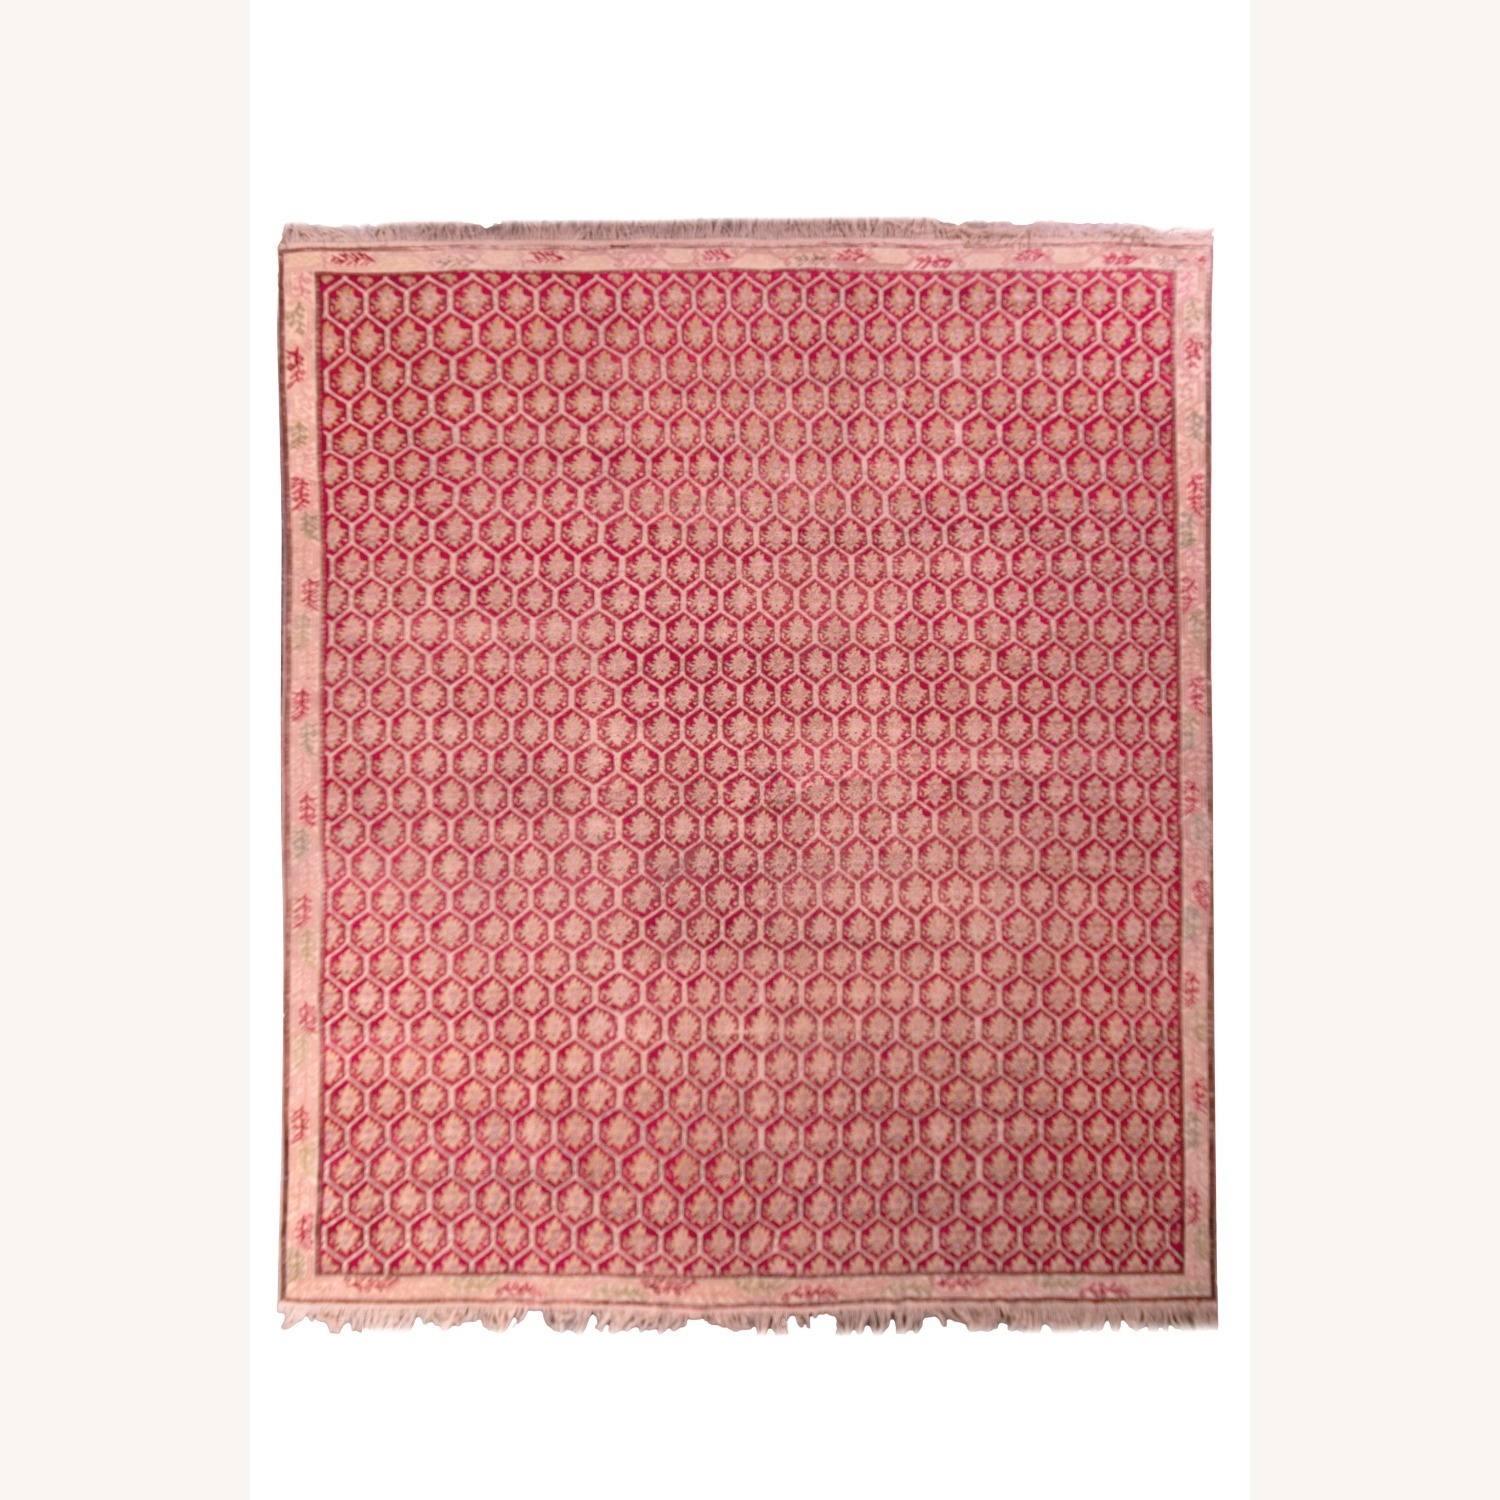 Antique Red and Pink Floral Rug - image-1